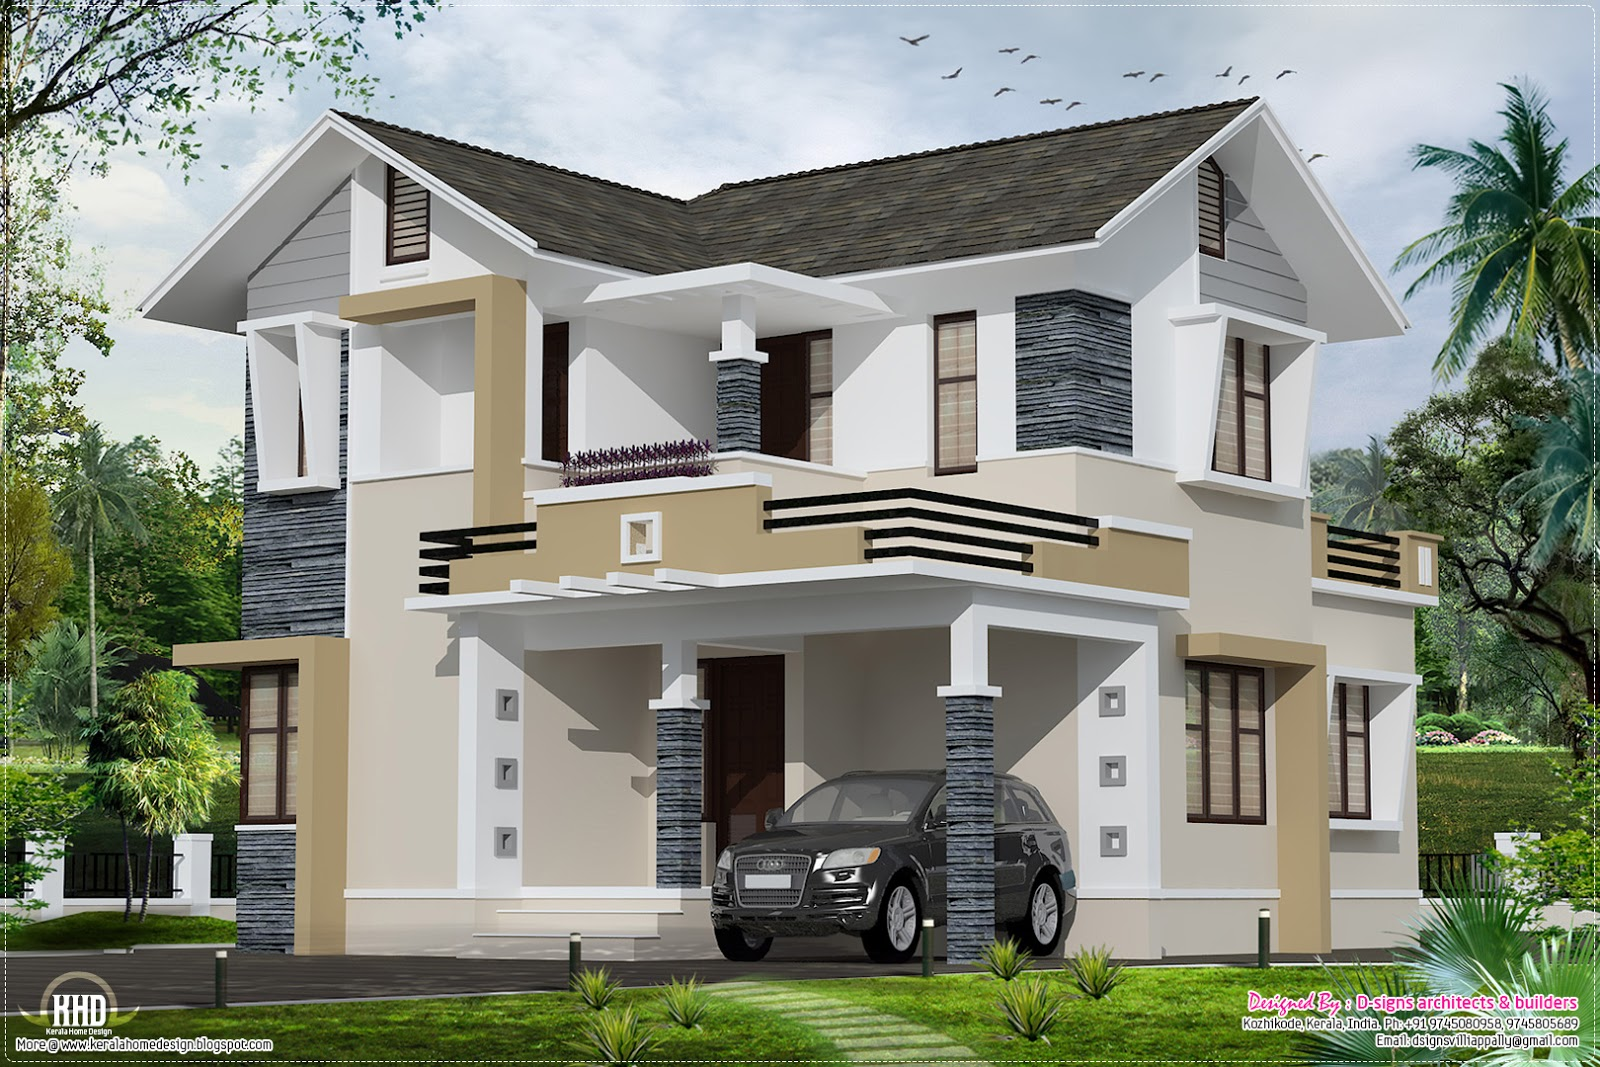 February 2013 kerala home design and floor plans for Small house design plans in india image